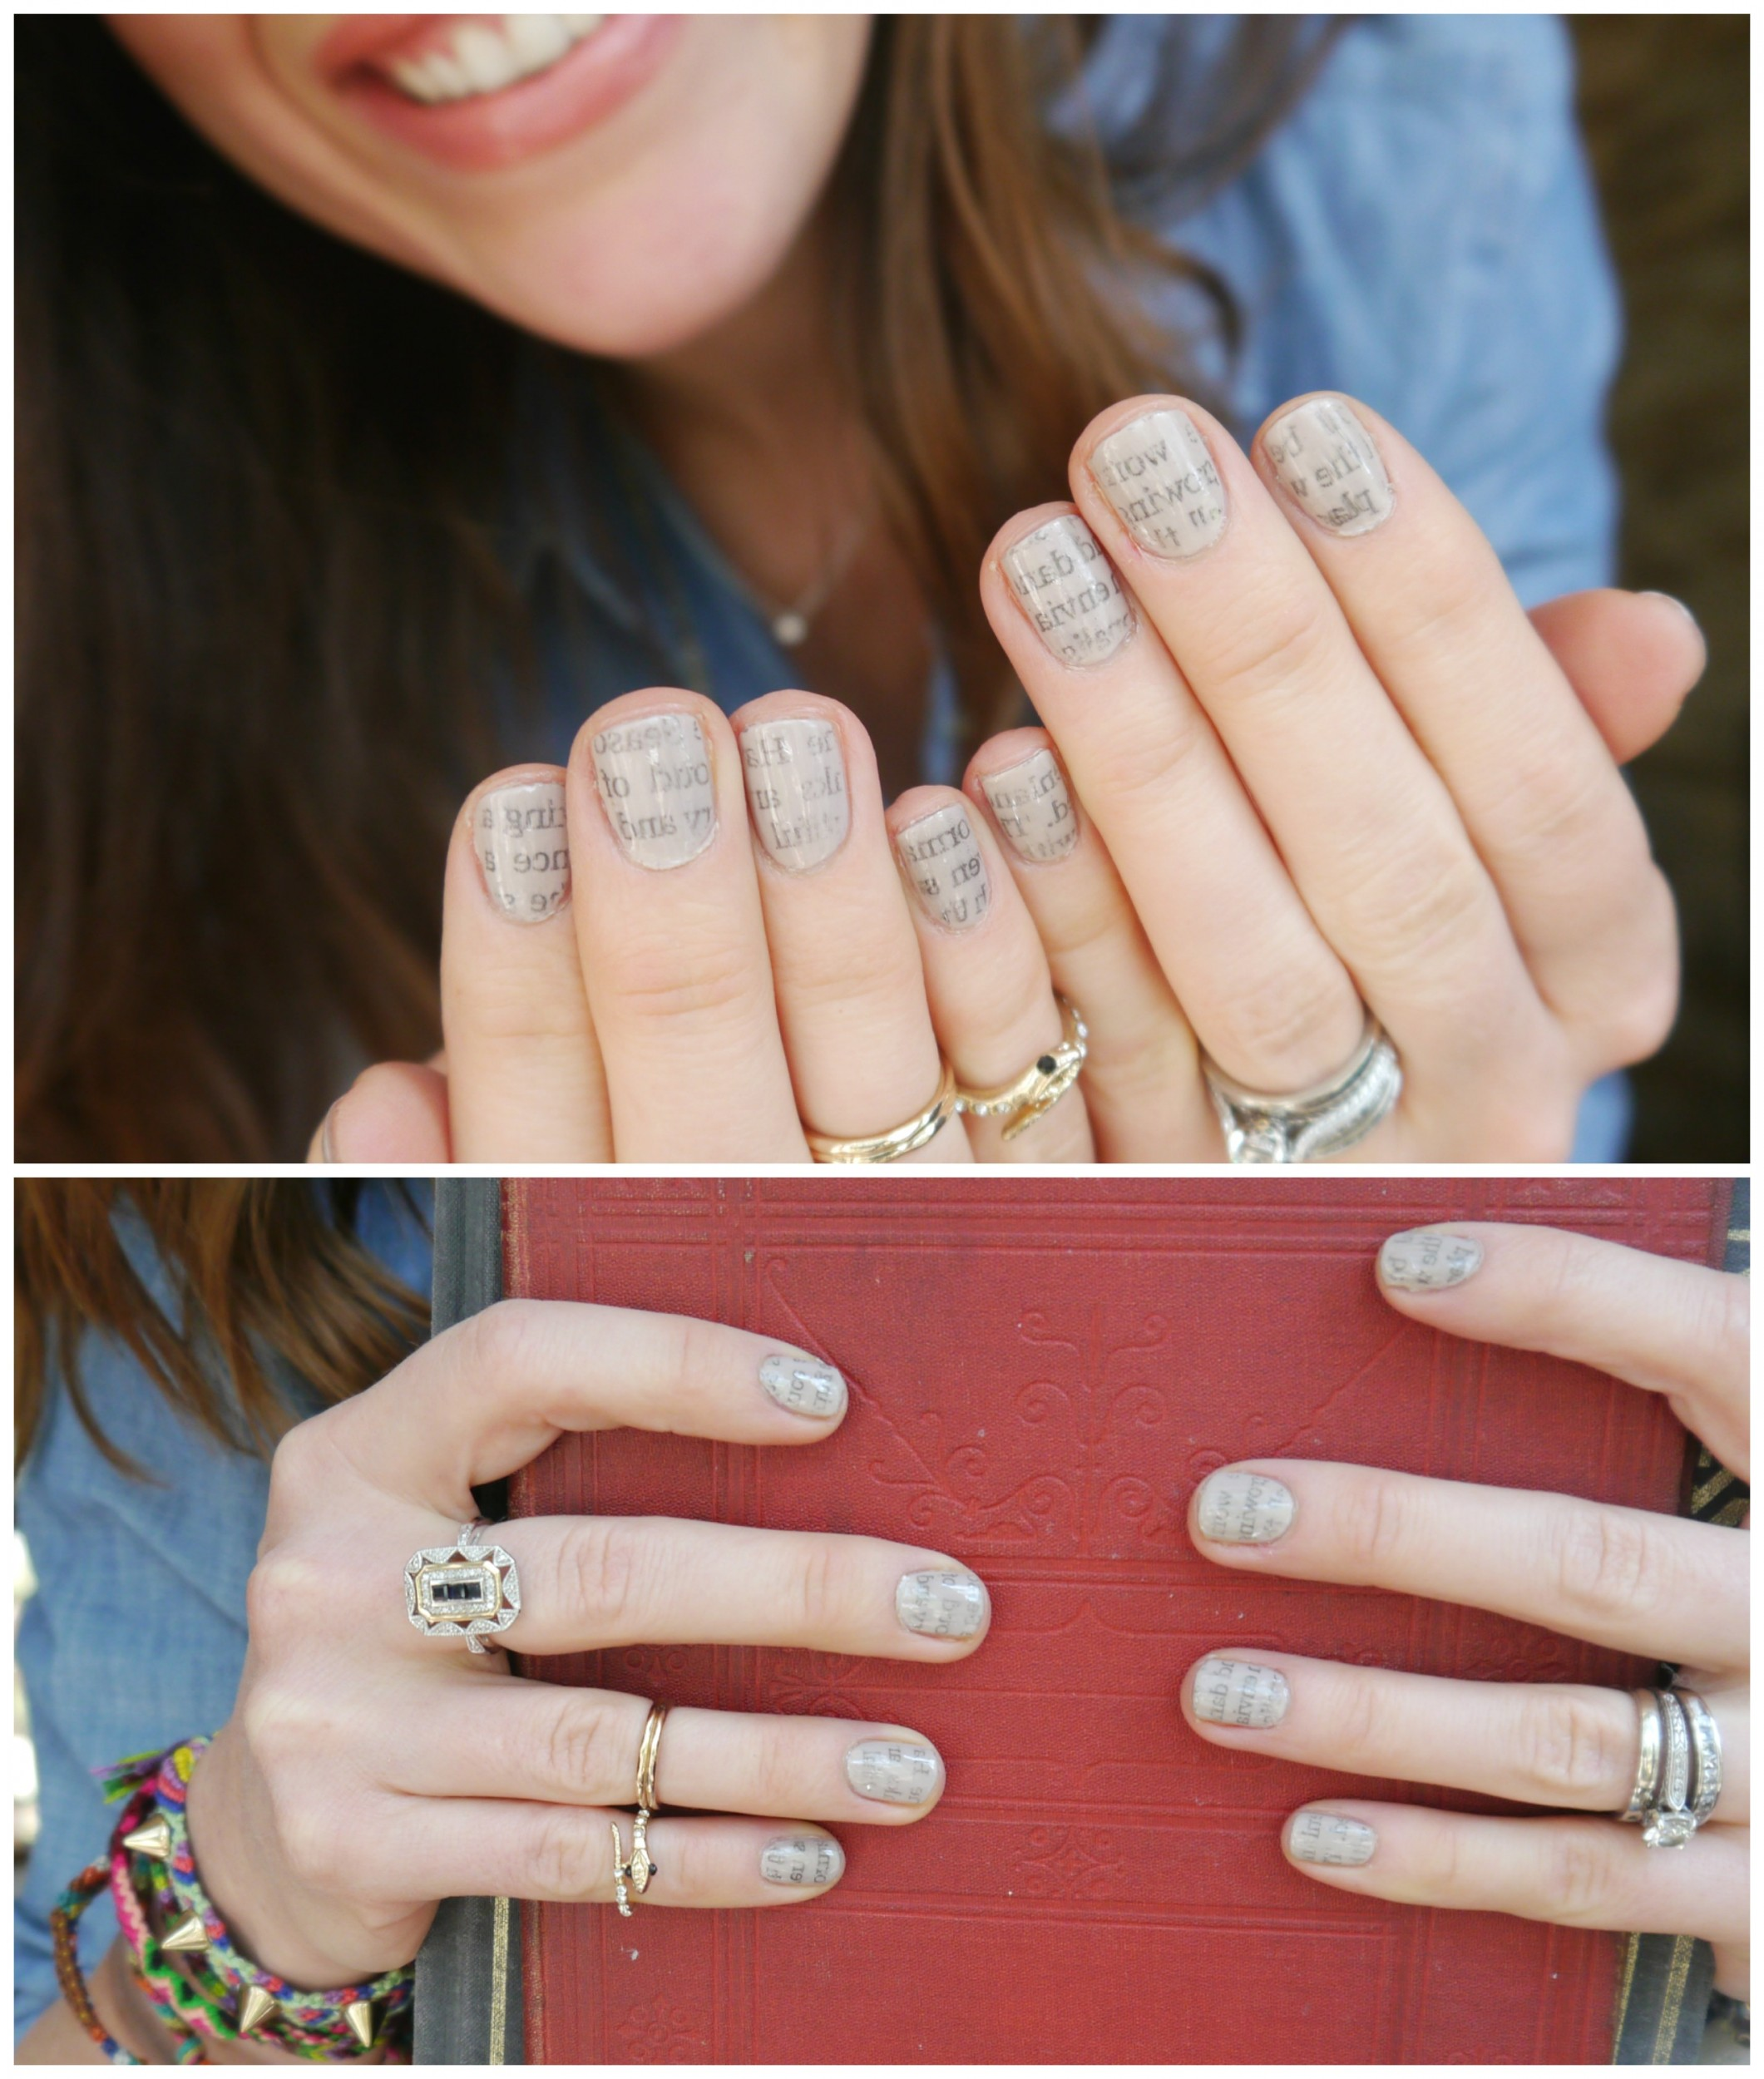 Newspaper Print Manicure